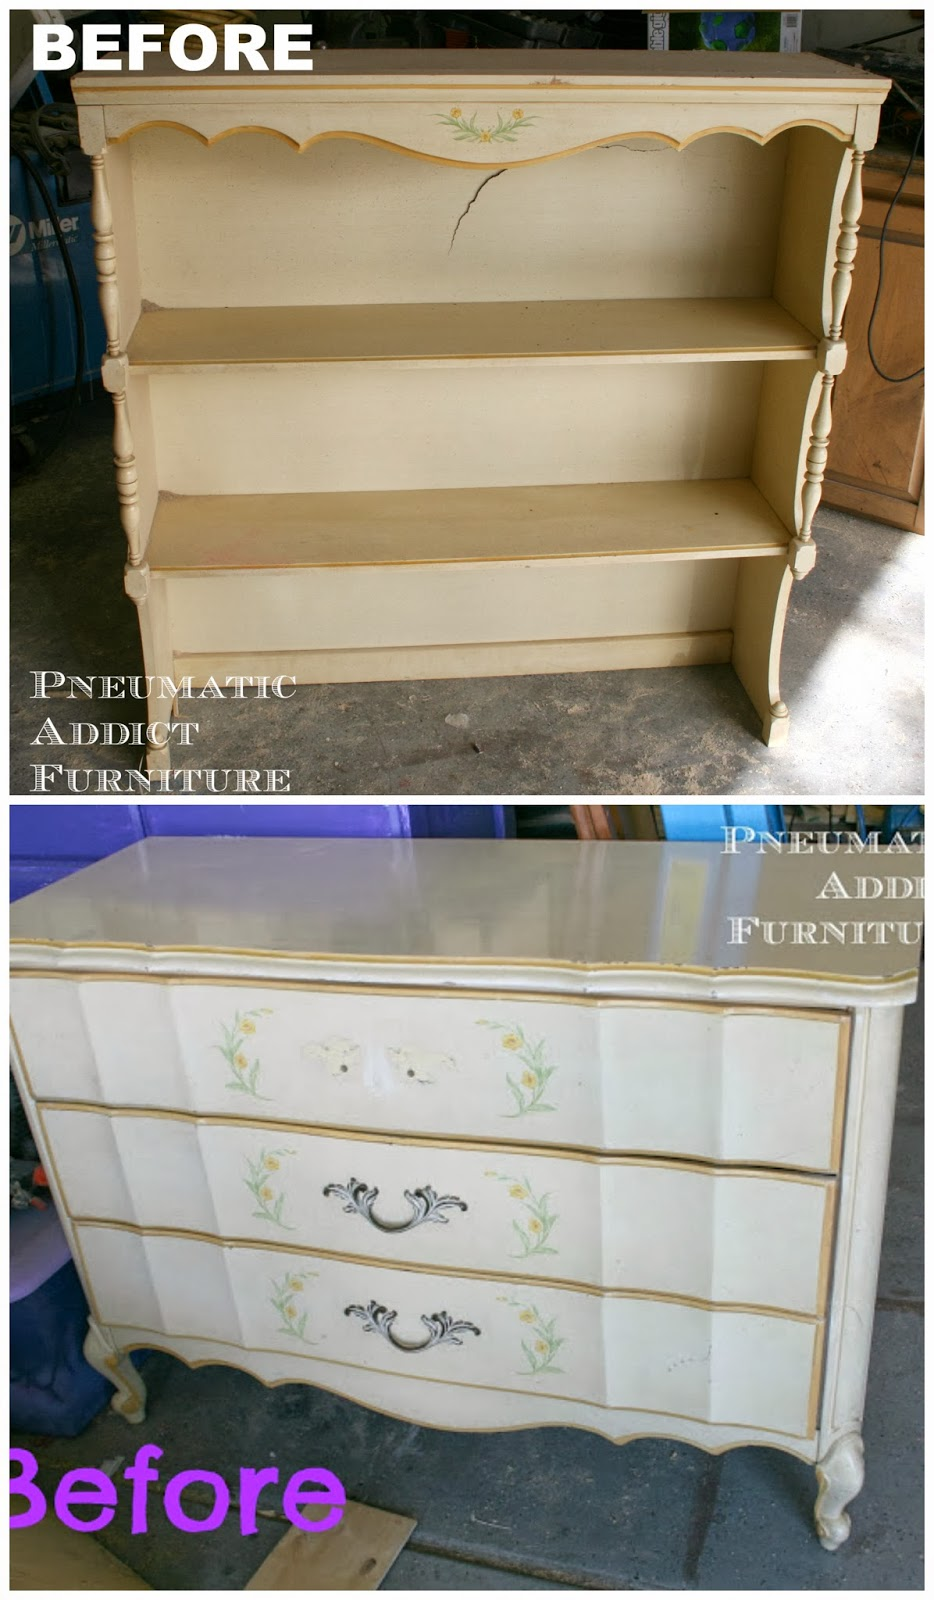 What To Do With An Old Dresser Hutch Pneumatic Addict